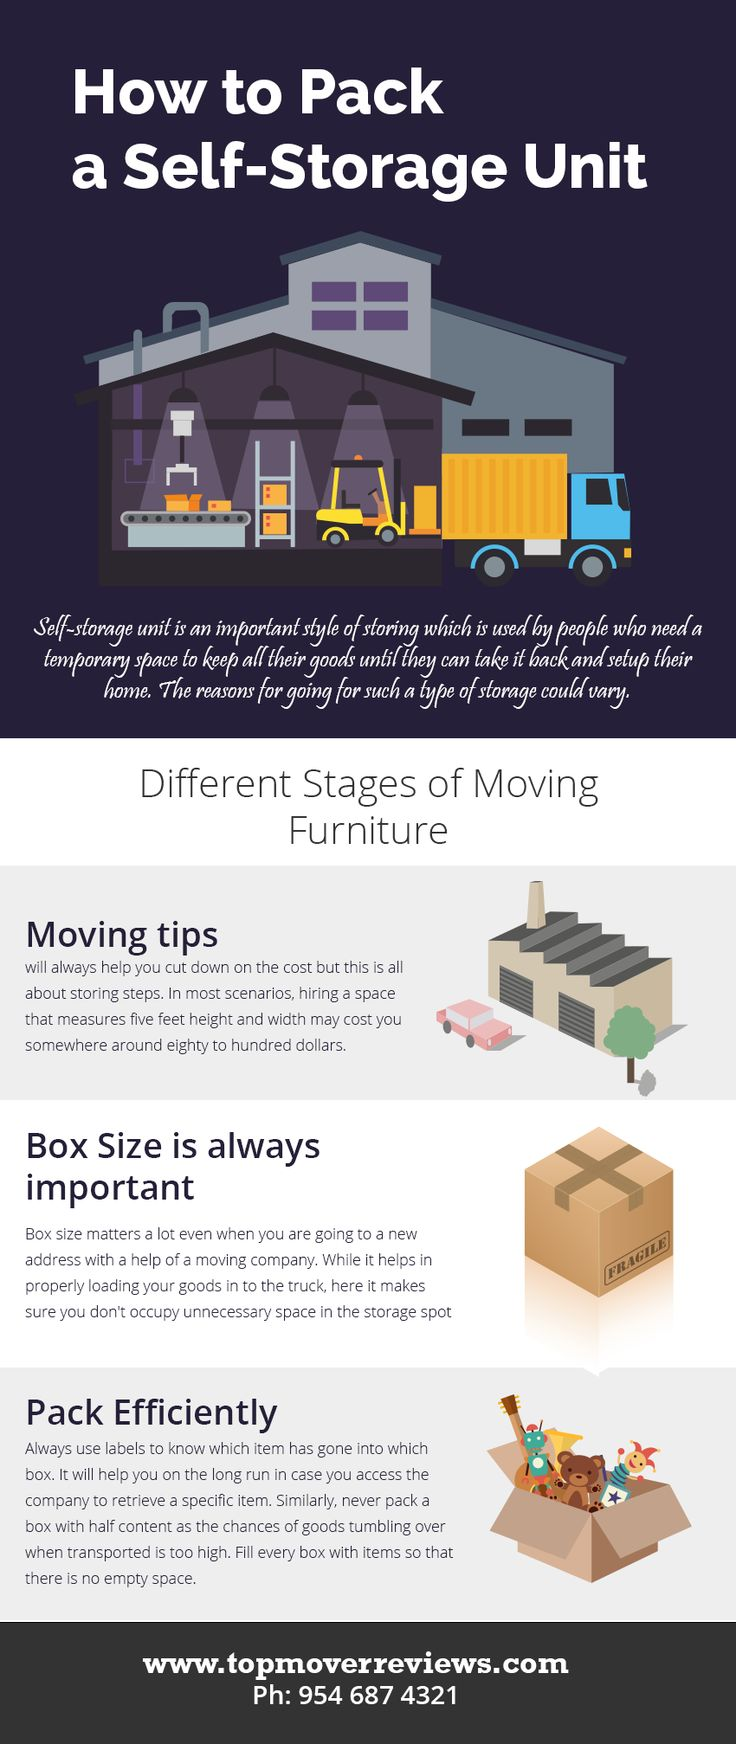 How to pack a self storage unit ? Top mover reviews moving tips helps people who need a temporary space to keep all their goods until they setup their home. http://topmoverreviews.com/how-to-pack-a-self-storage-unit